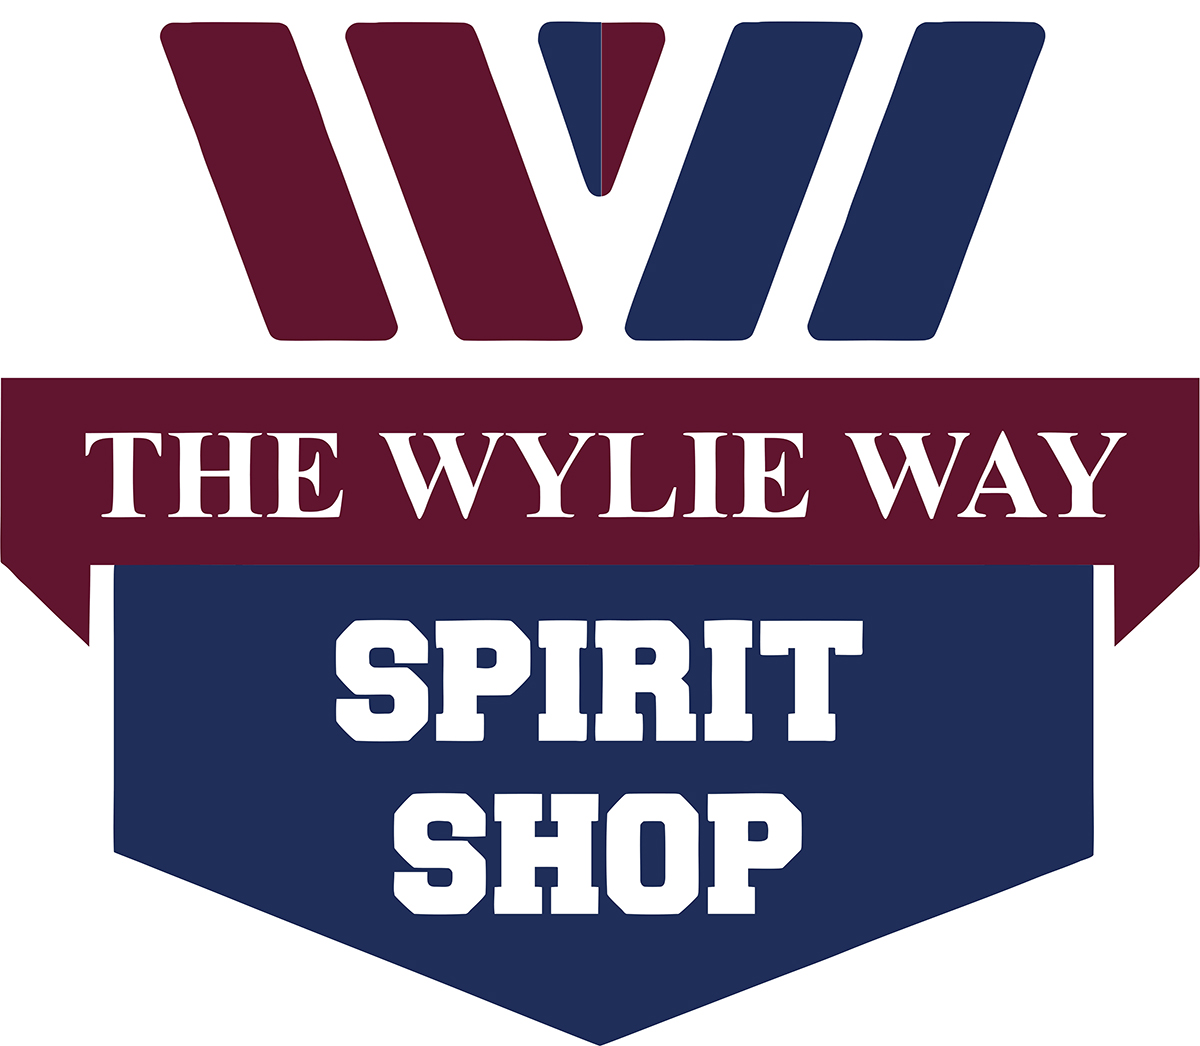 citywide spirits shoppe essay The wine & spirit education trust provides globally recognised education and qualifications in wines, spirits and sake, for professionals and enthusiasts.